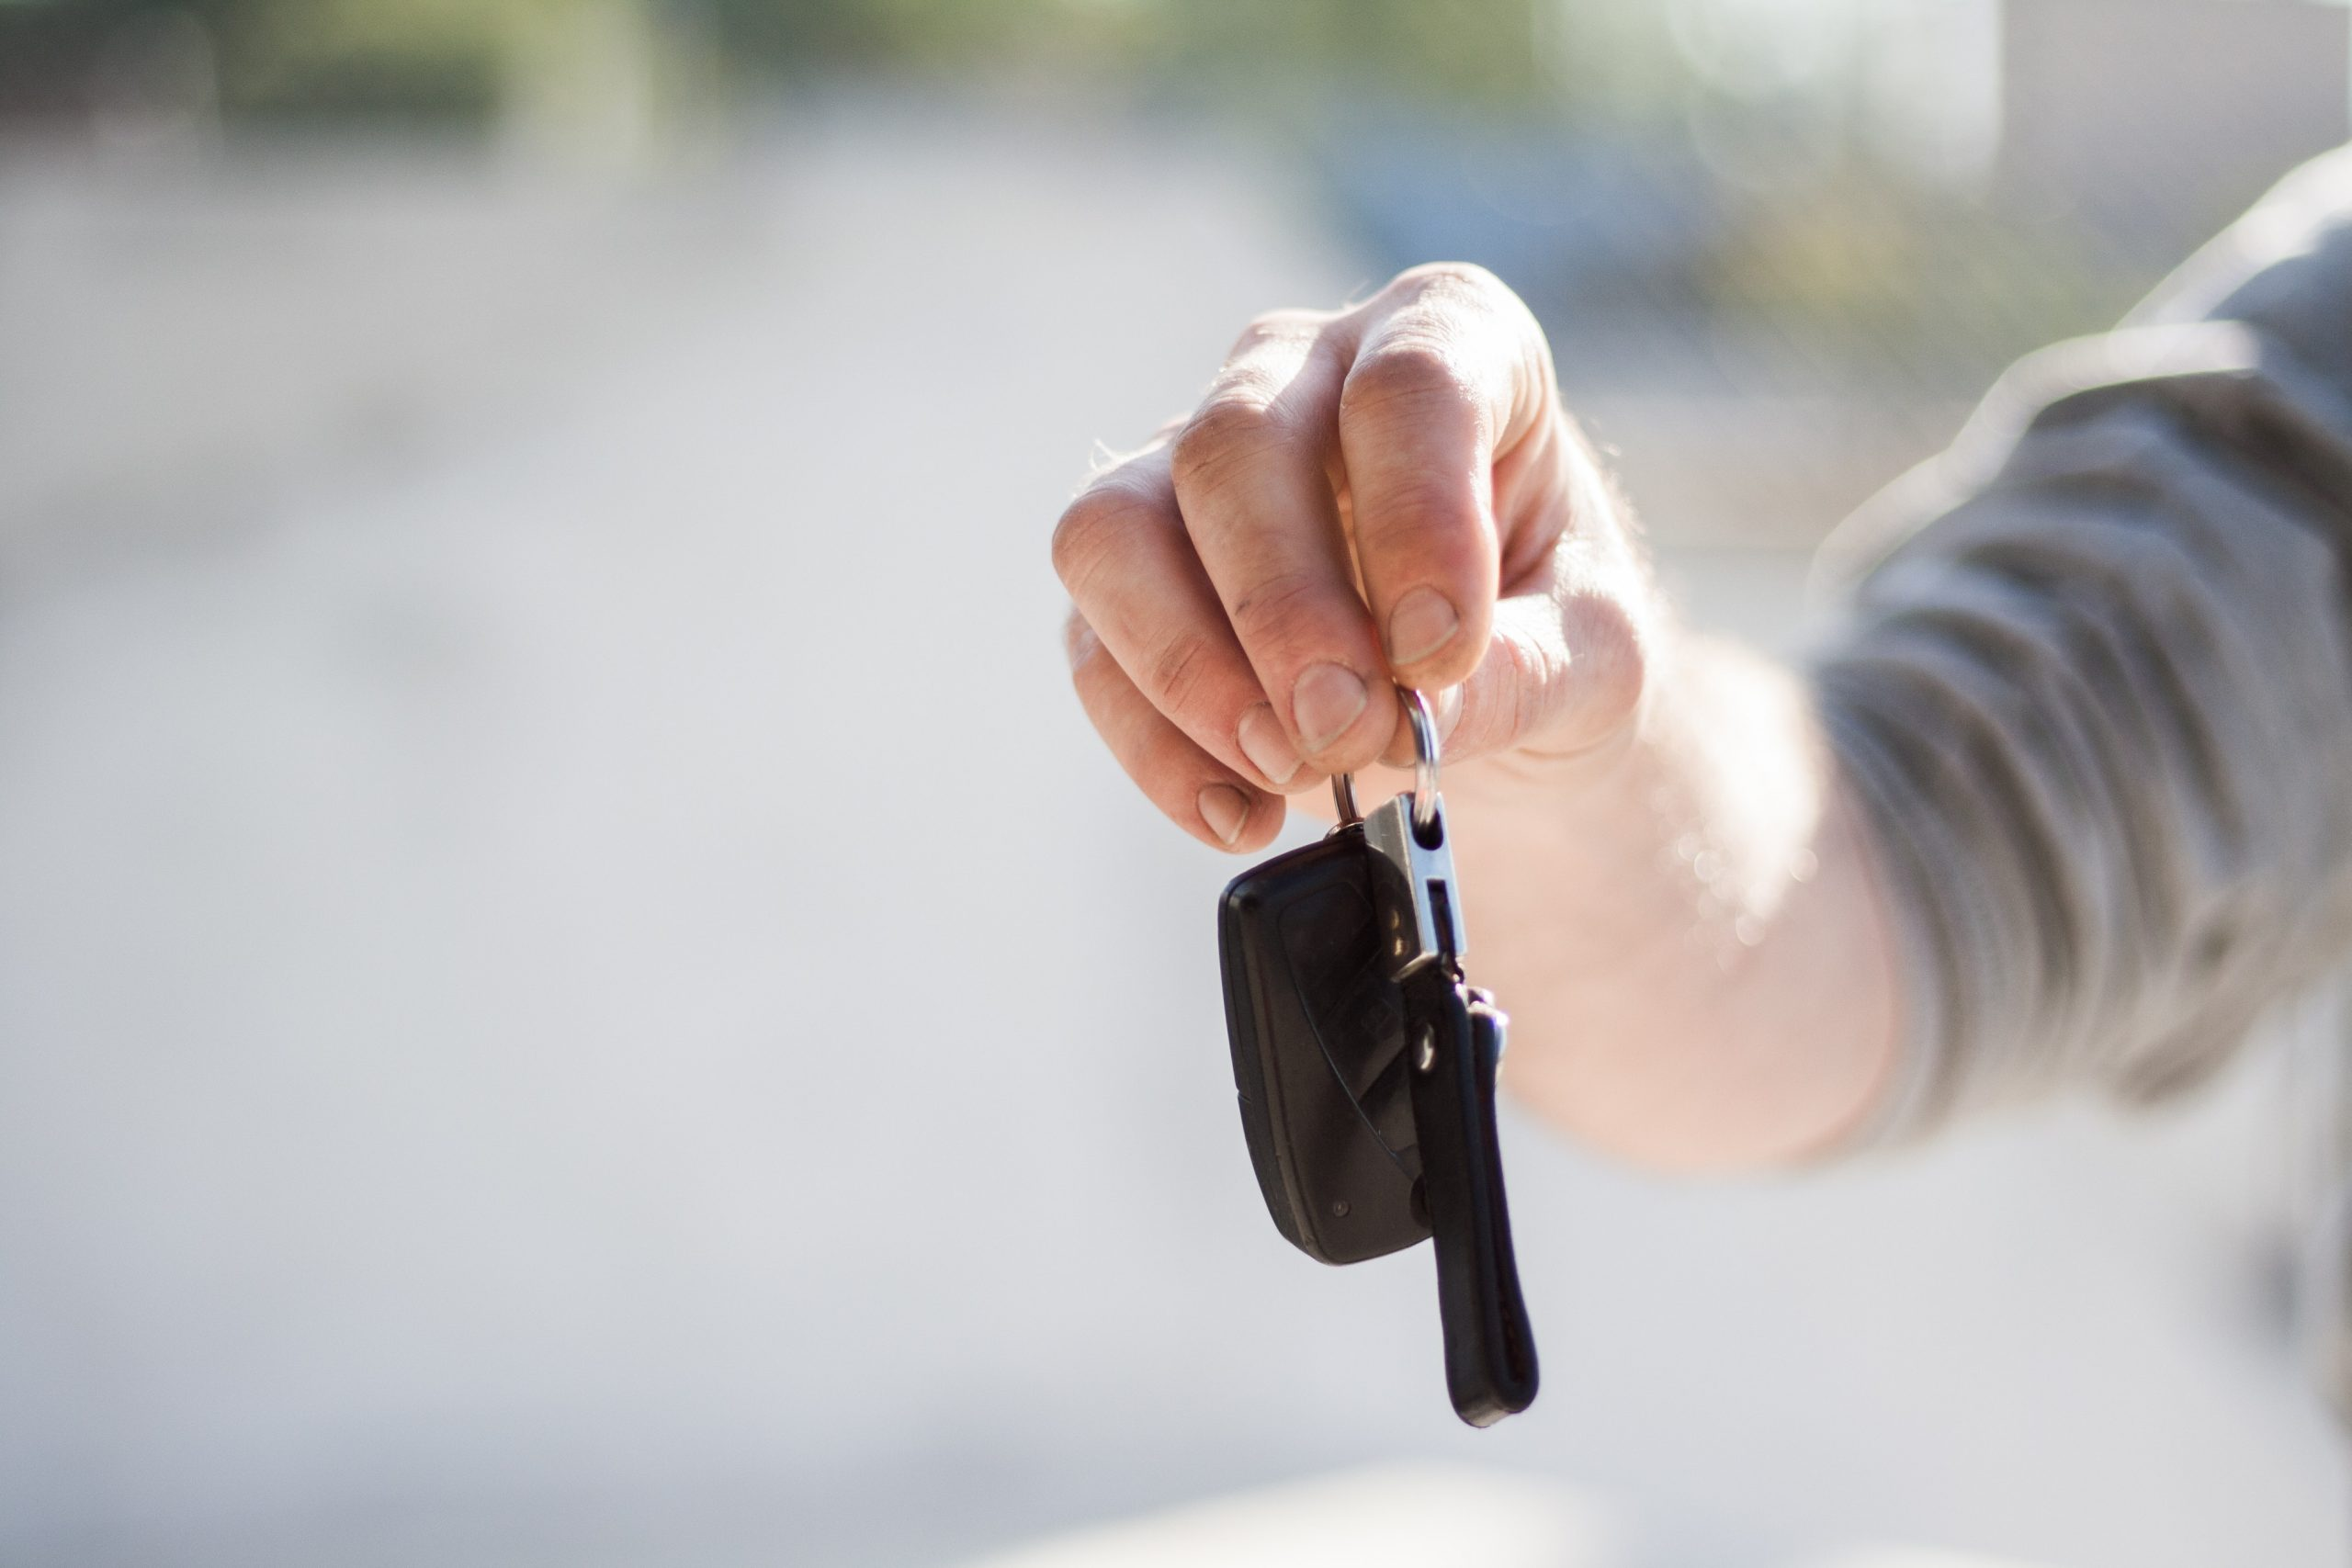 Cridde: new car rental smartphone app aims to disrupt the industry